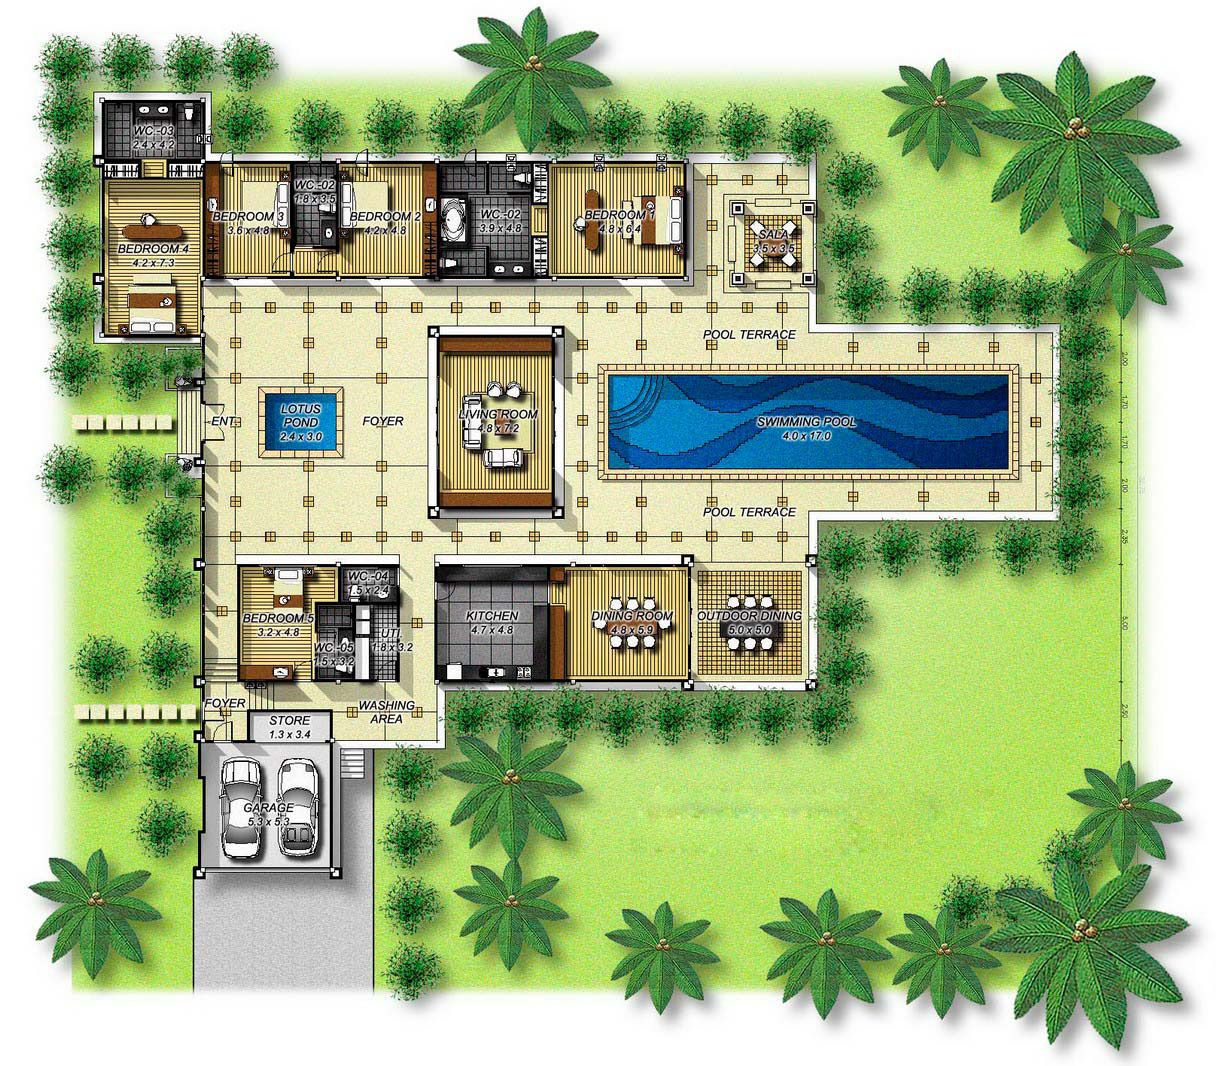 House plans with courtyards in the center central for Pool design blueprints